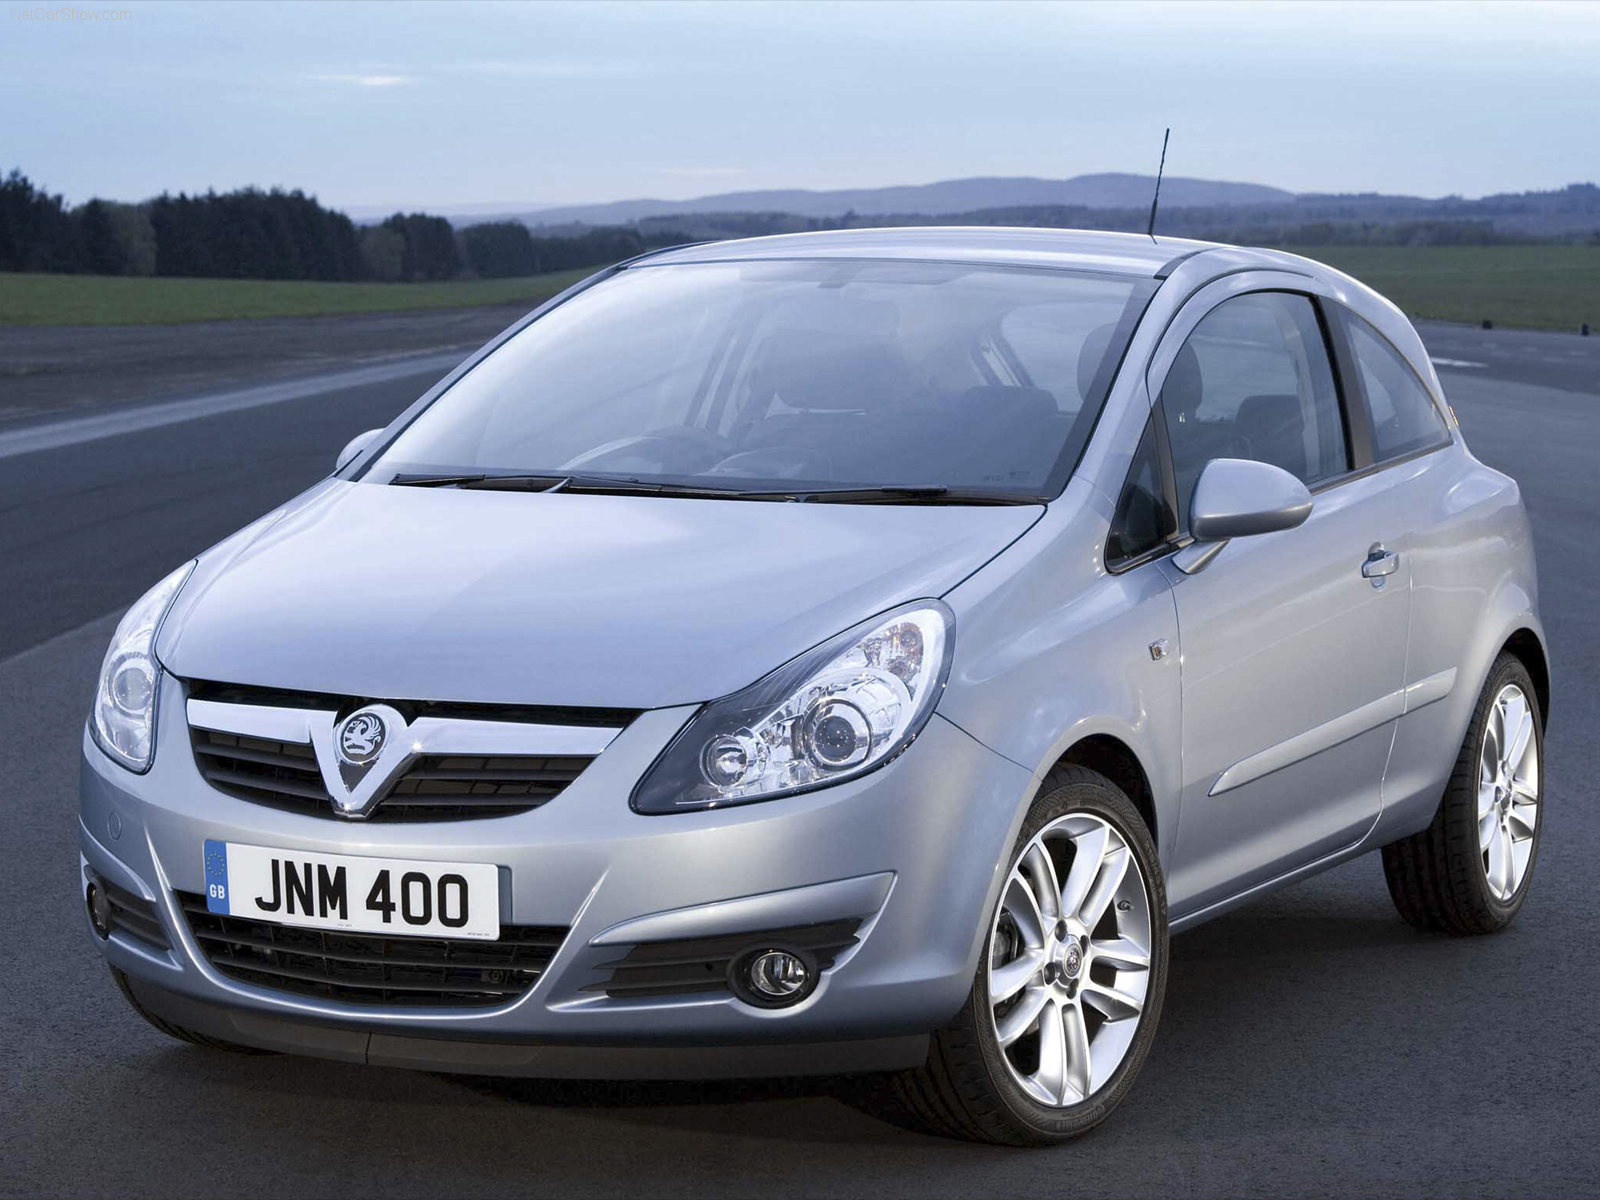 Vauxhall Corsa 3door Hatchback 2007